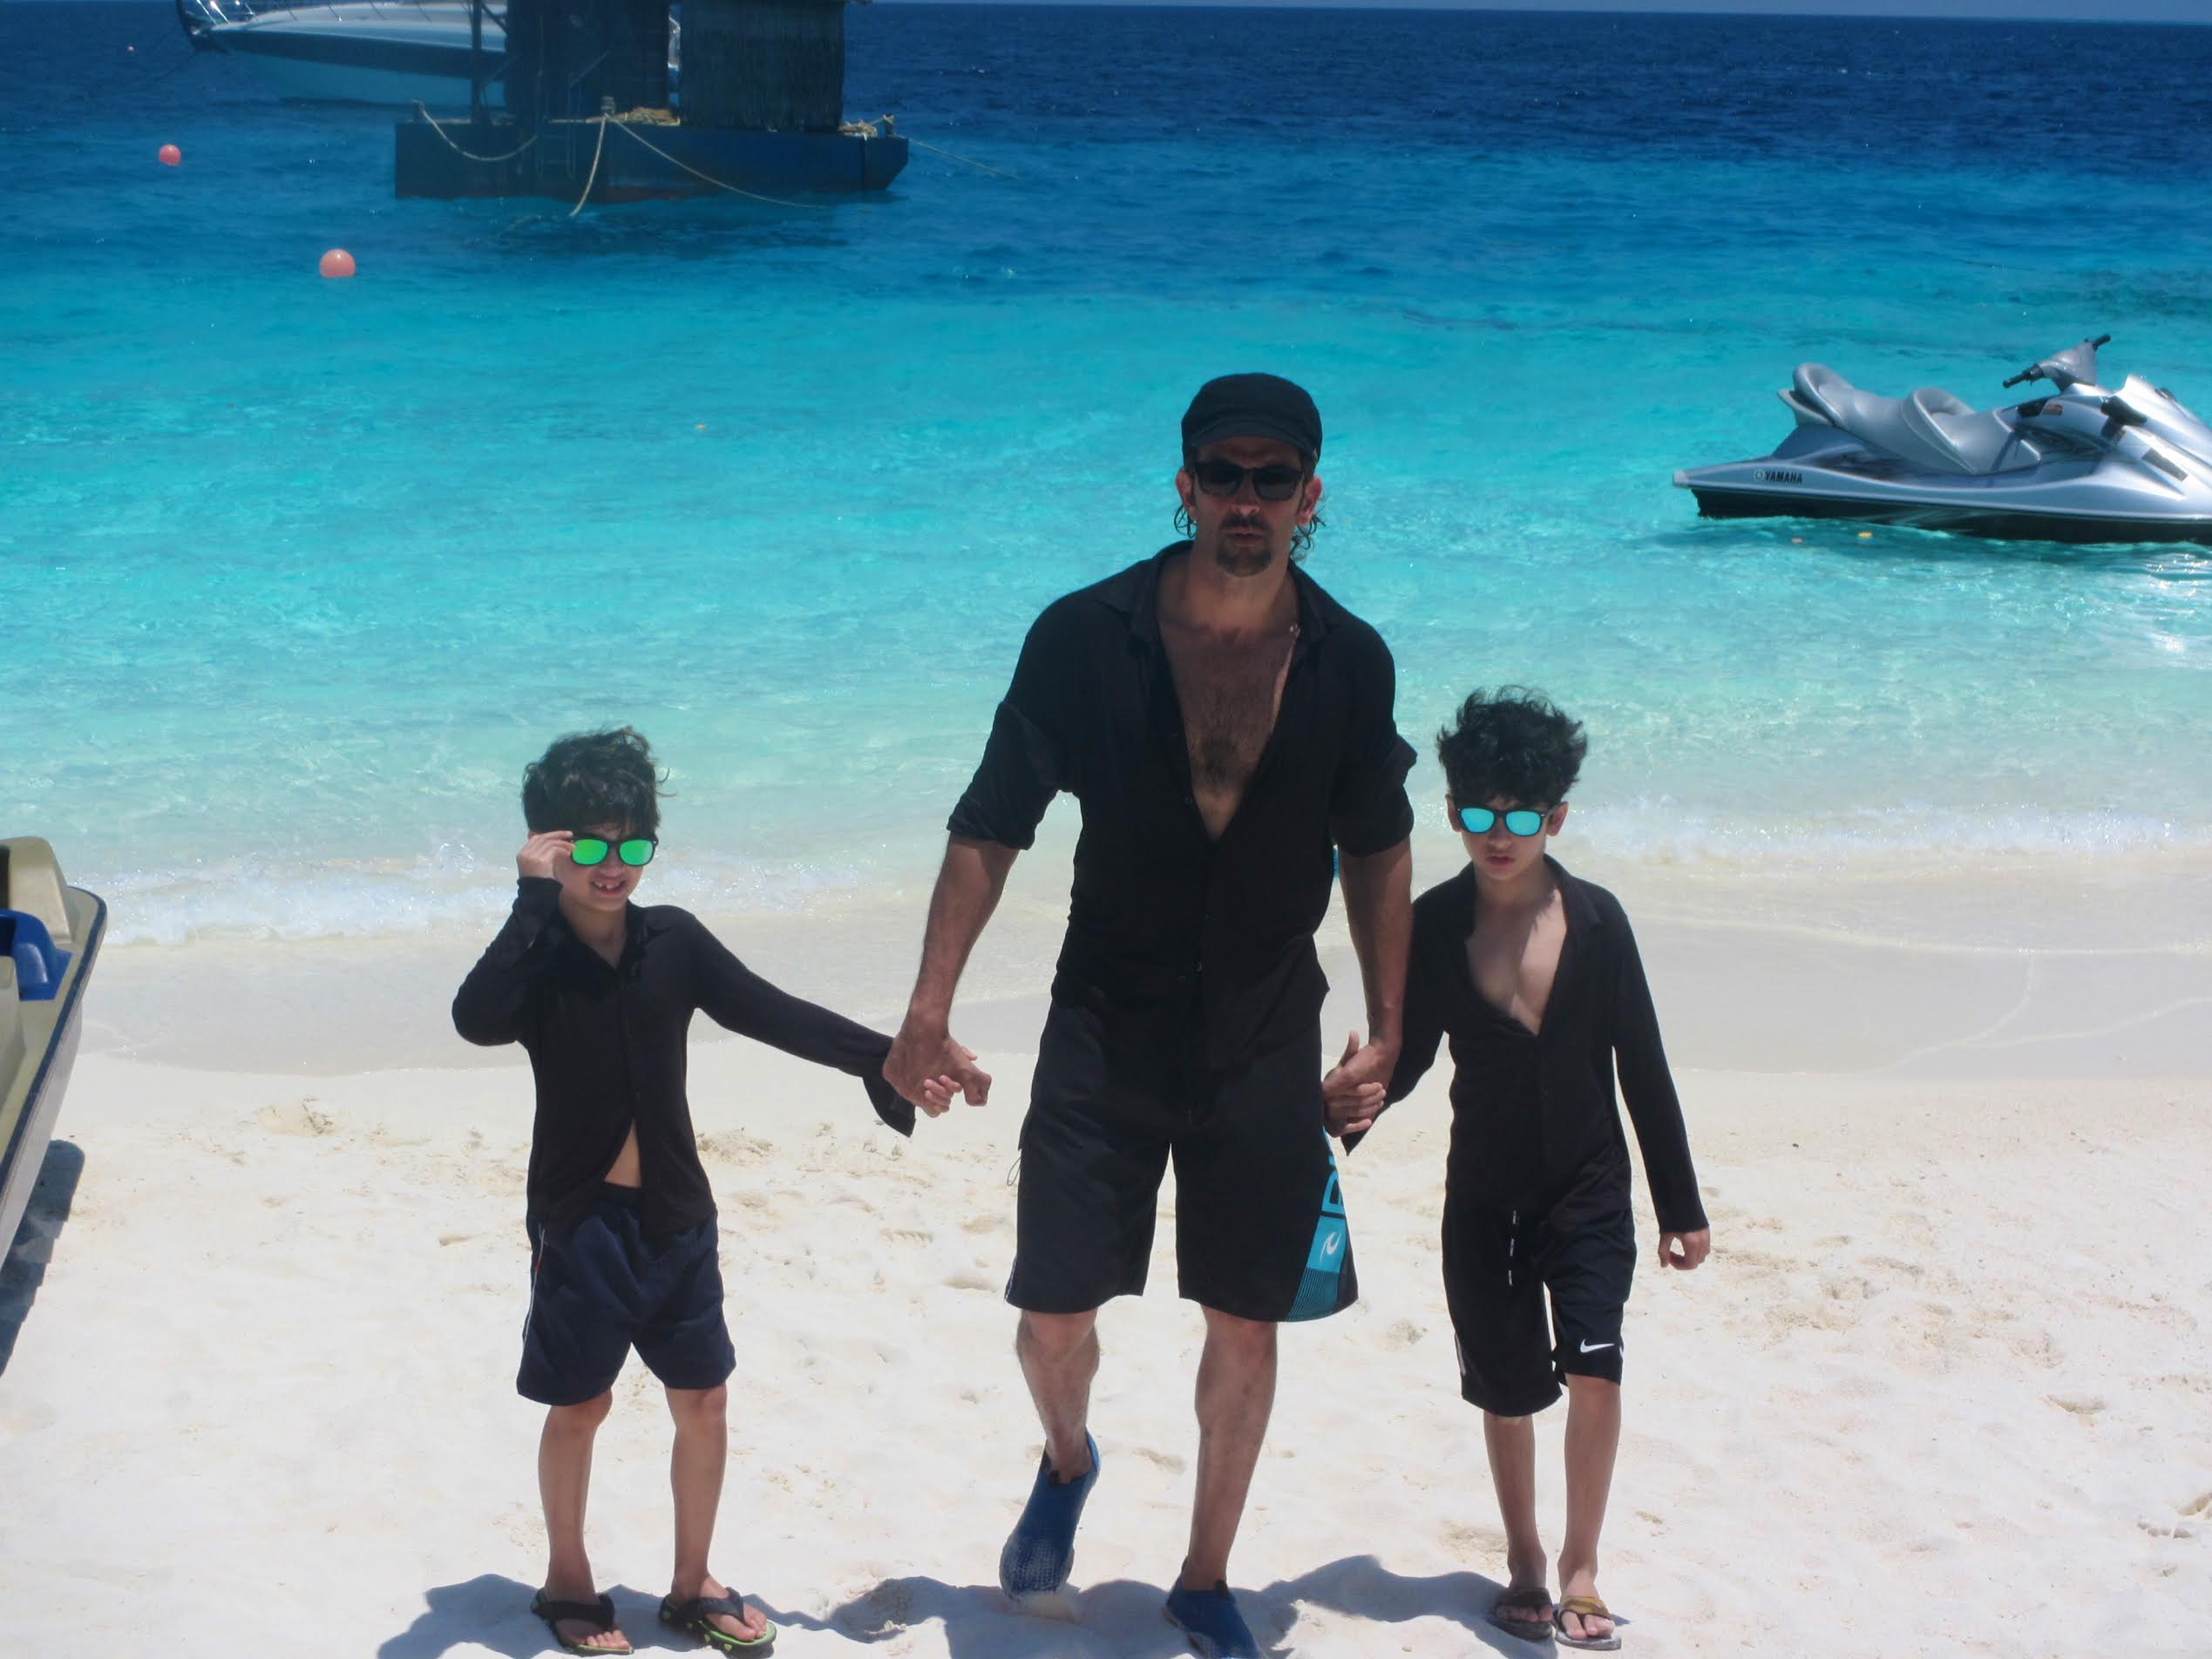 Actor Hrithik Roshan has fun with sons, mother and sister in